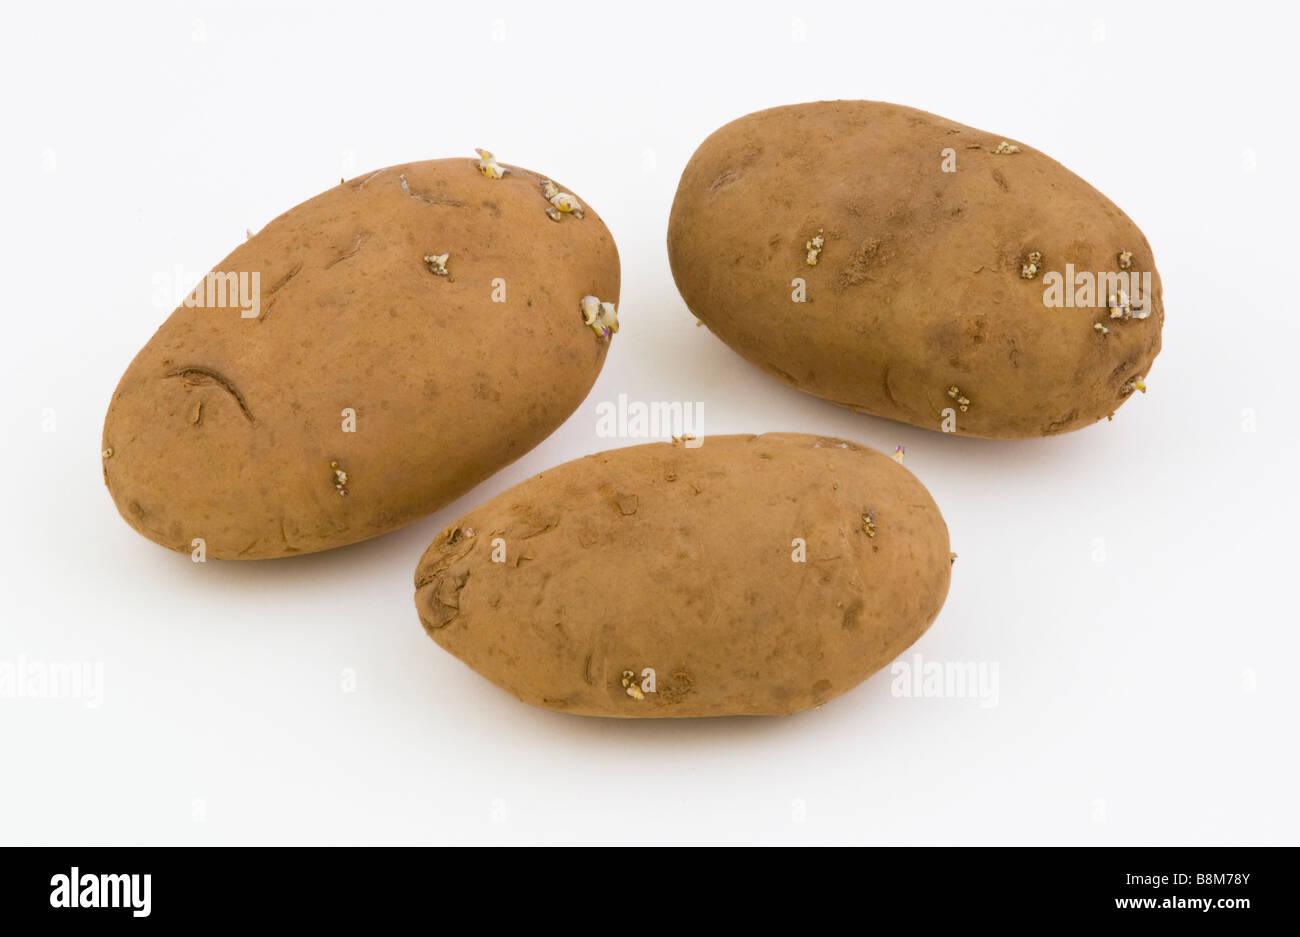 HOME GUARD 1st early seed potatoes - Stock Image